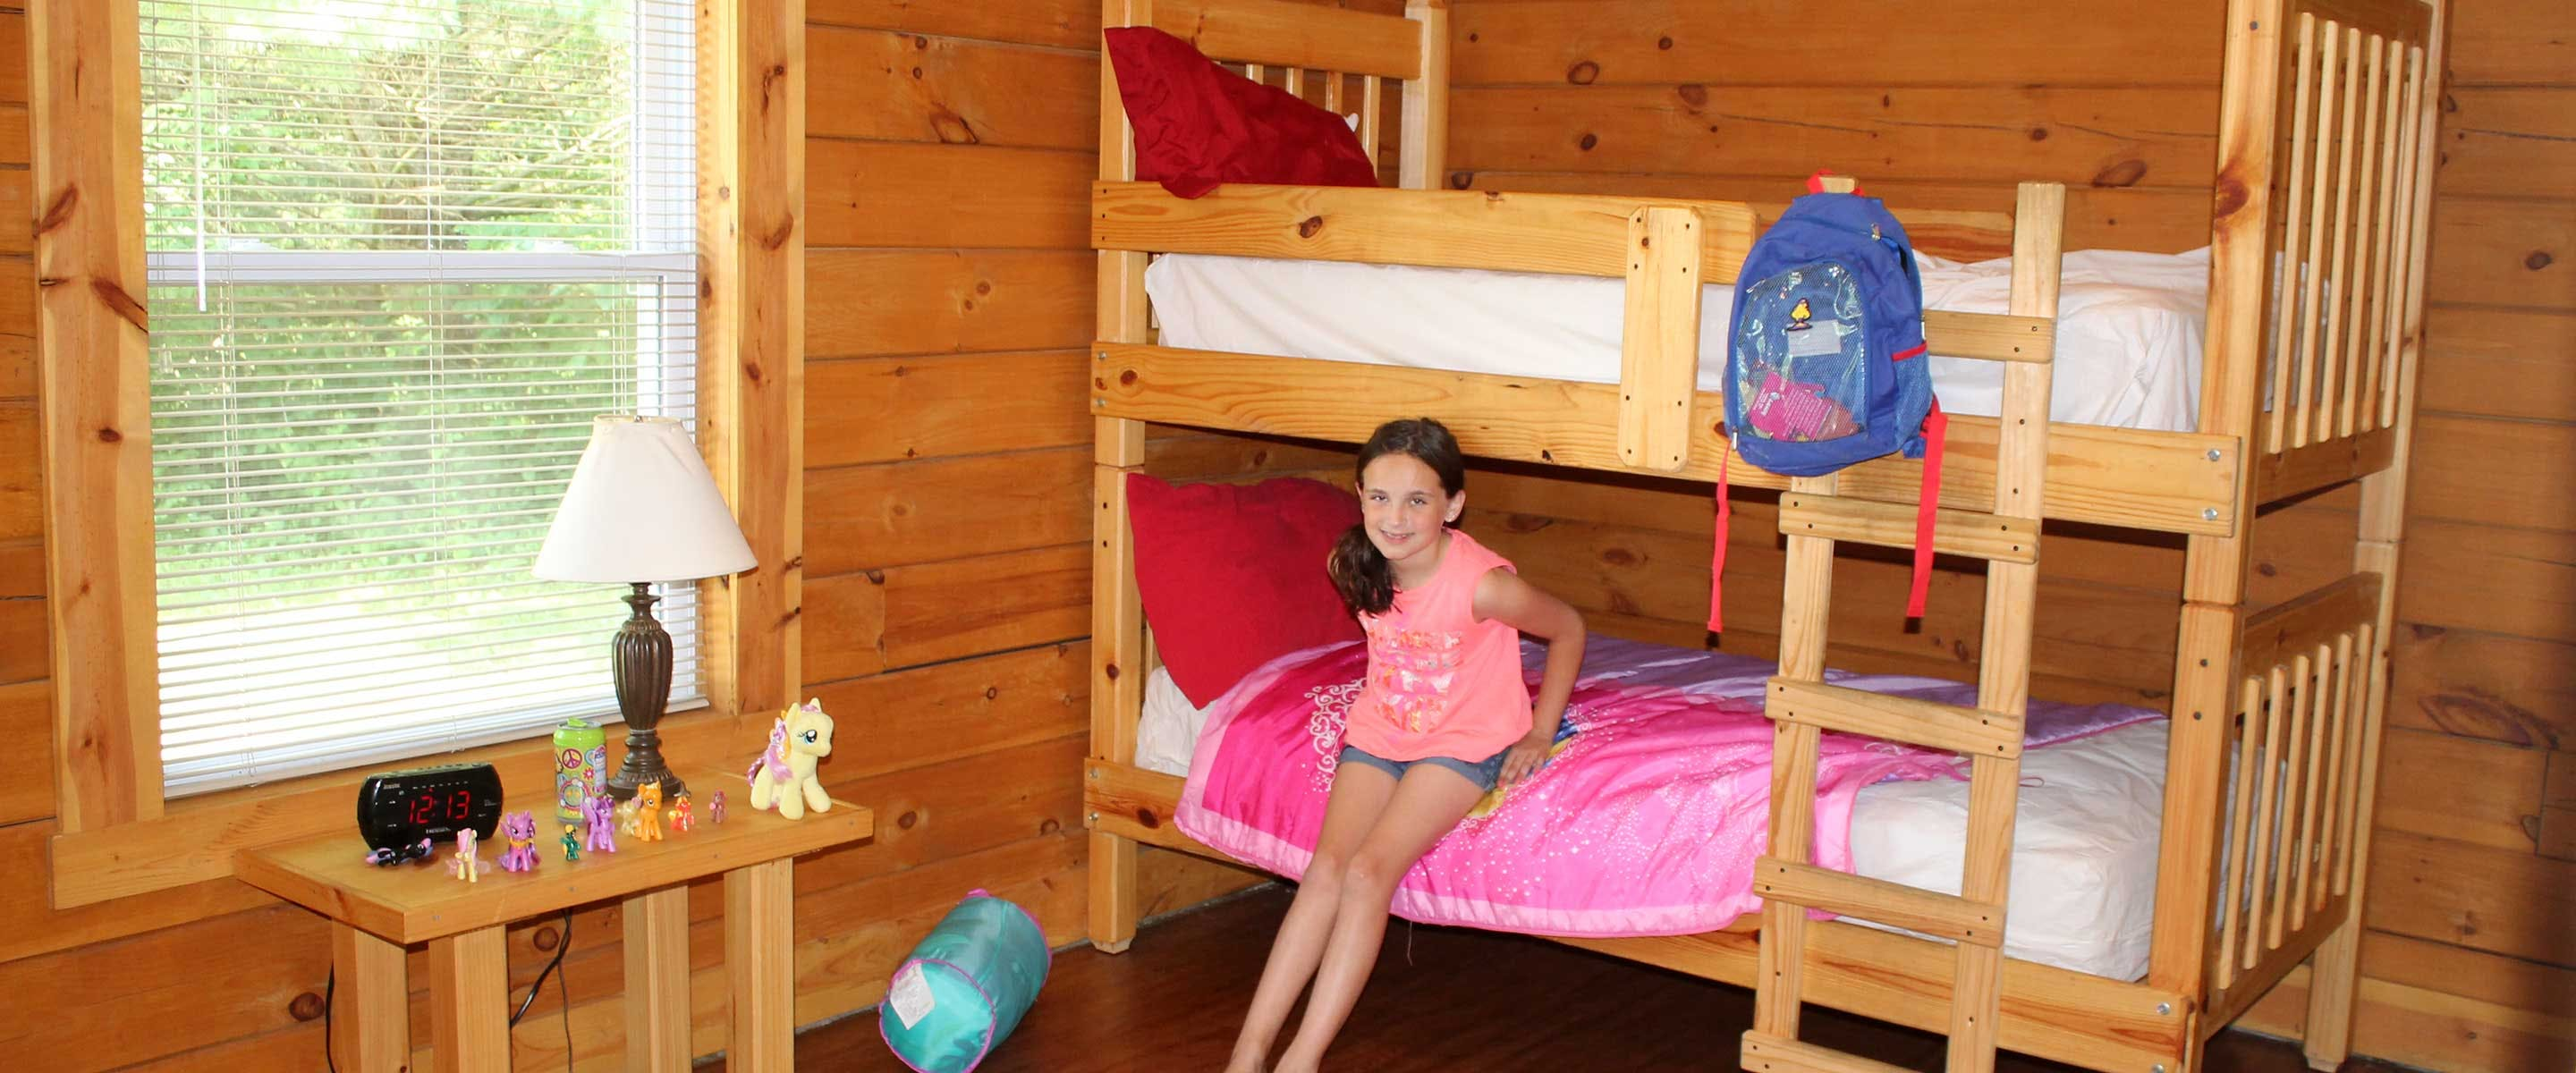 girl leading against bunk bed in cabin